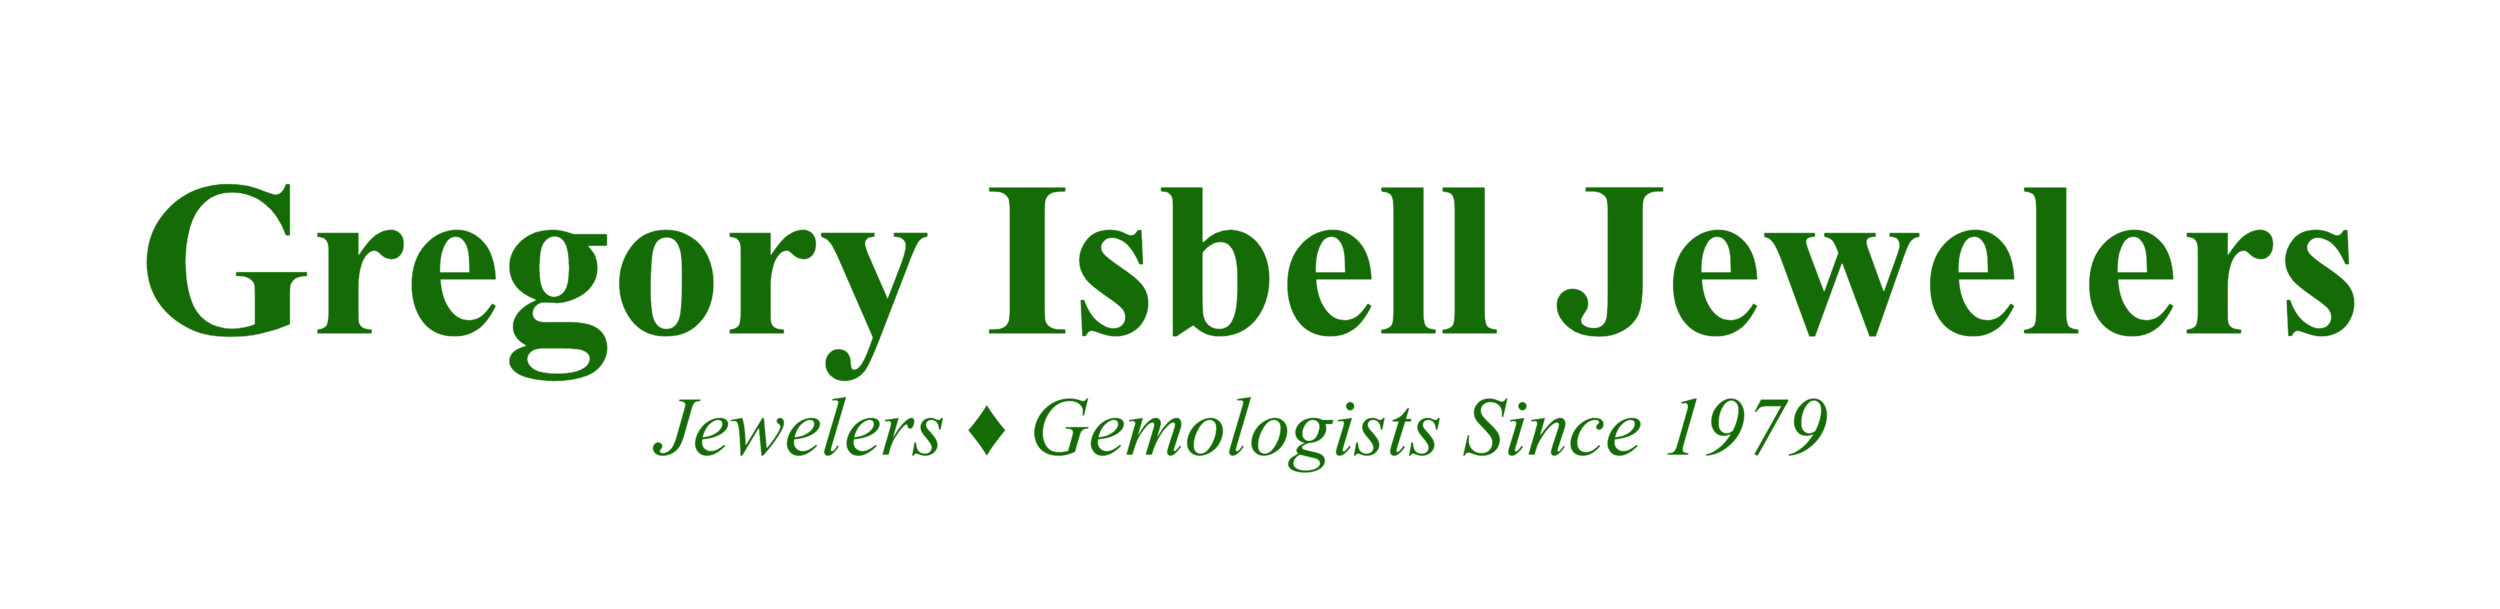 Gregory Isbell -logo Green 5000.png